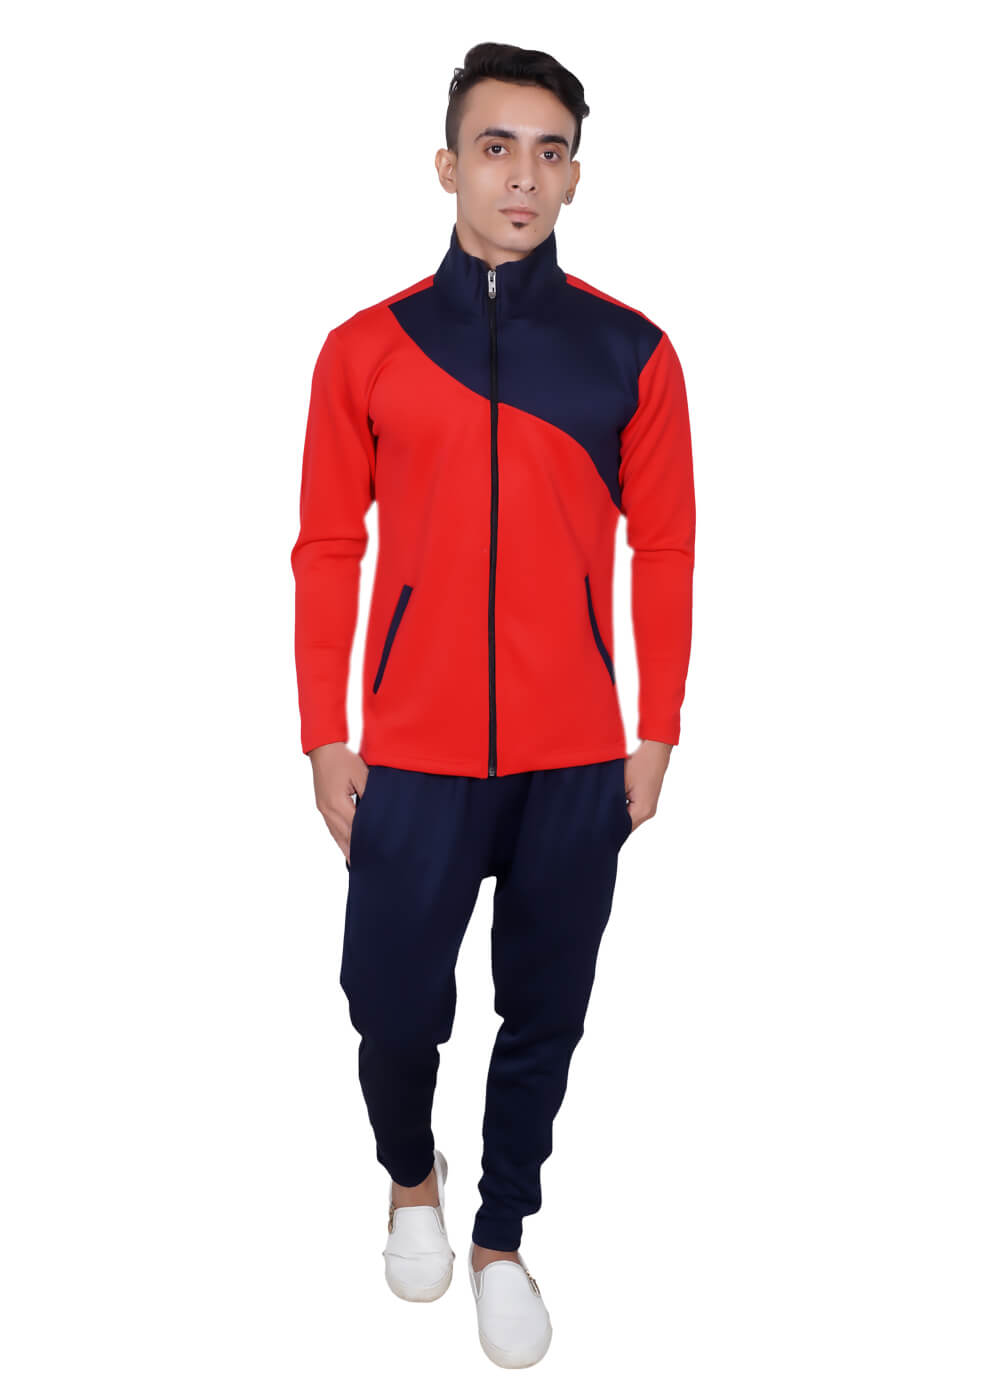 Cheap Tracksuits Manufacturers in Nanded